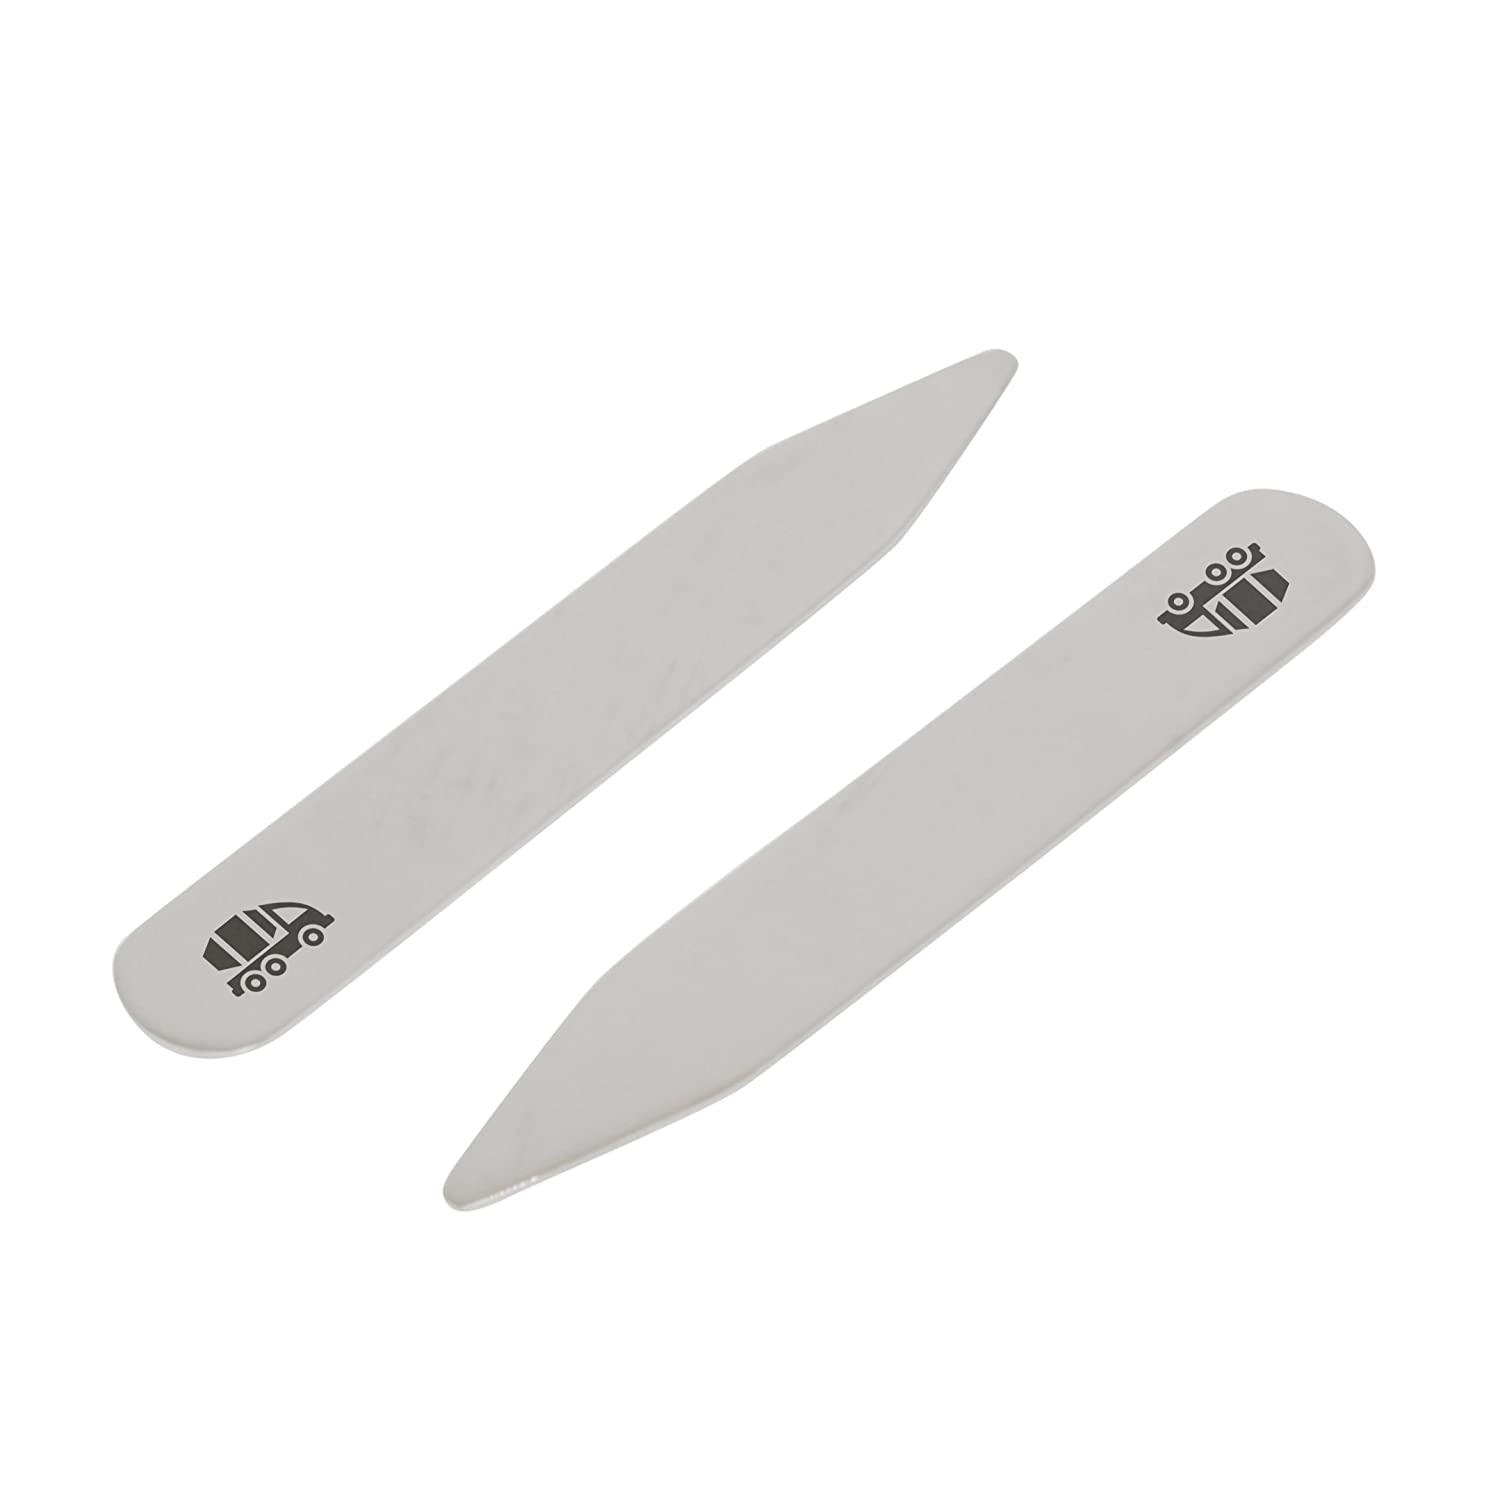 Made In USA 2.5 Inch Metal Collar Stiffeners MODERN GOODS SHOP Stainless Steel Collar Stays With Laser Engraved Cement Truck Design